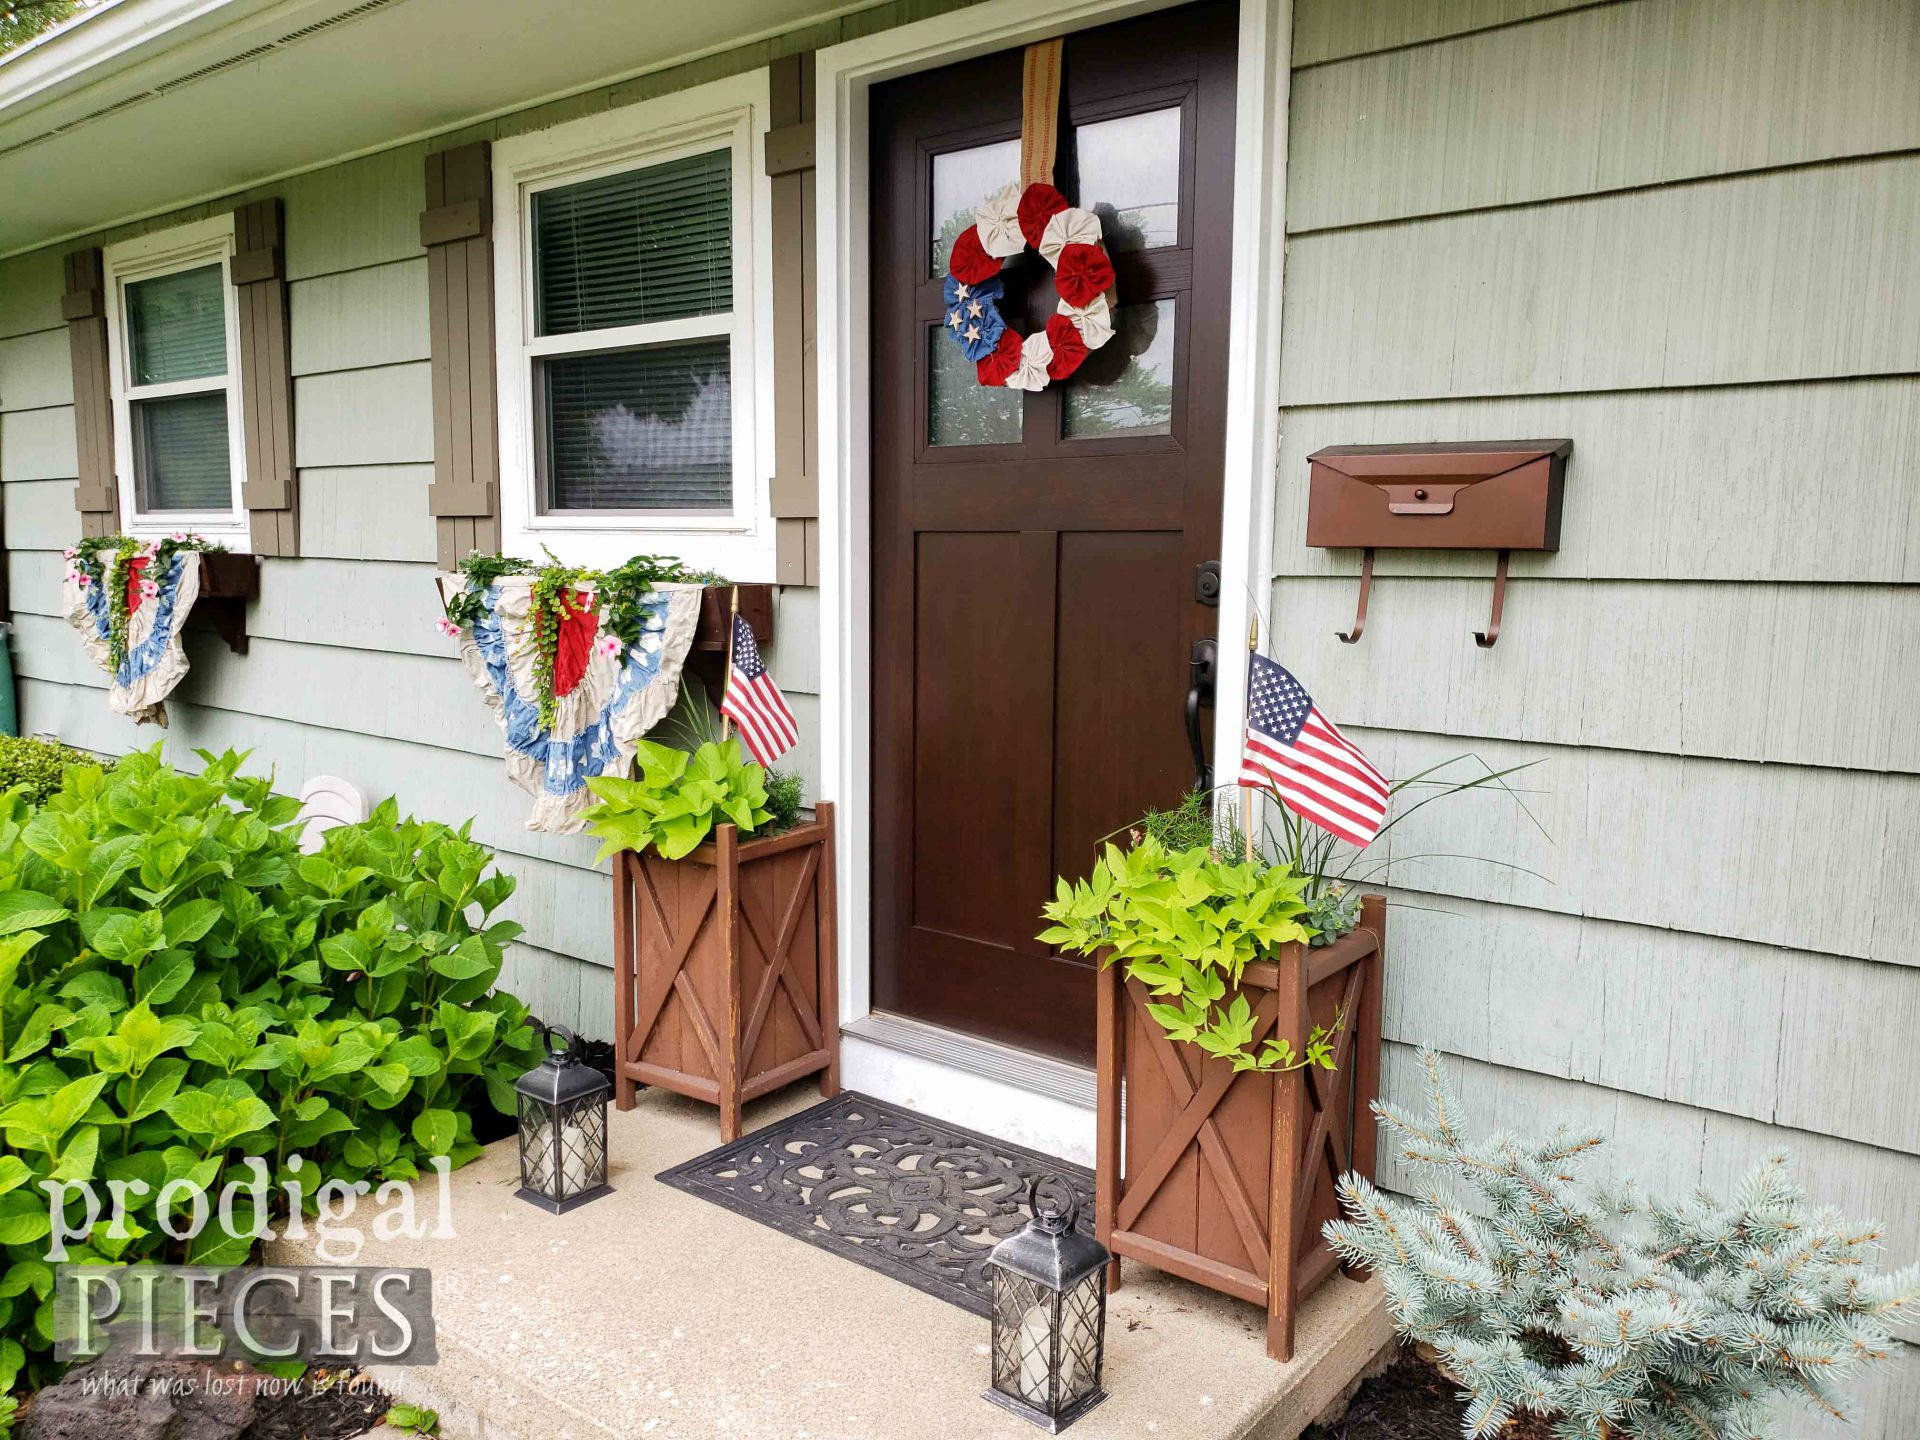 Outdoor Independence Day Decor by Larissa of Prodigal Pieces | prodigalpieces.com #prodigalpieces #diy #4thofjuly #home #homedecor